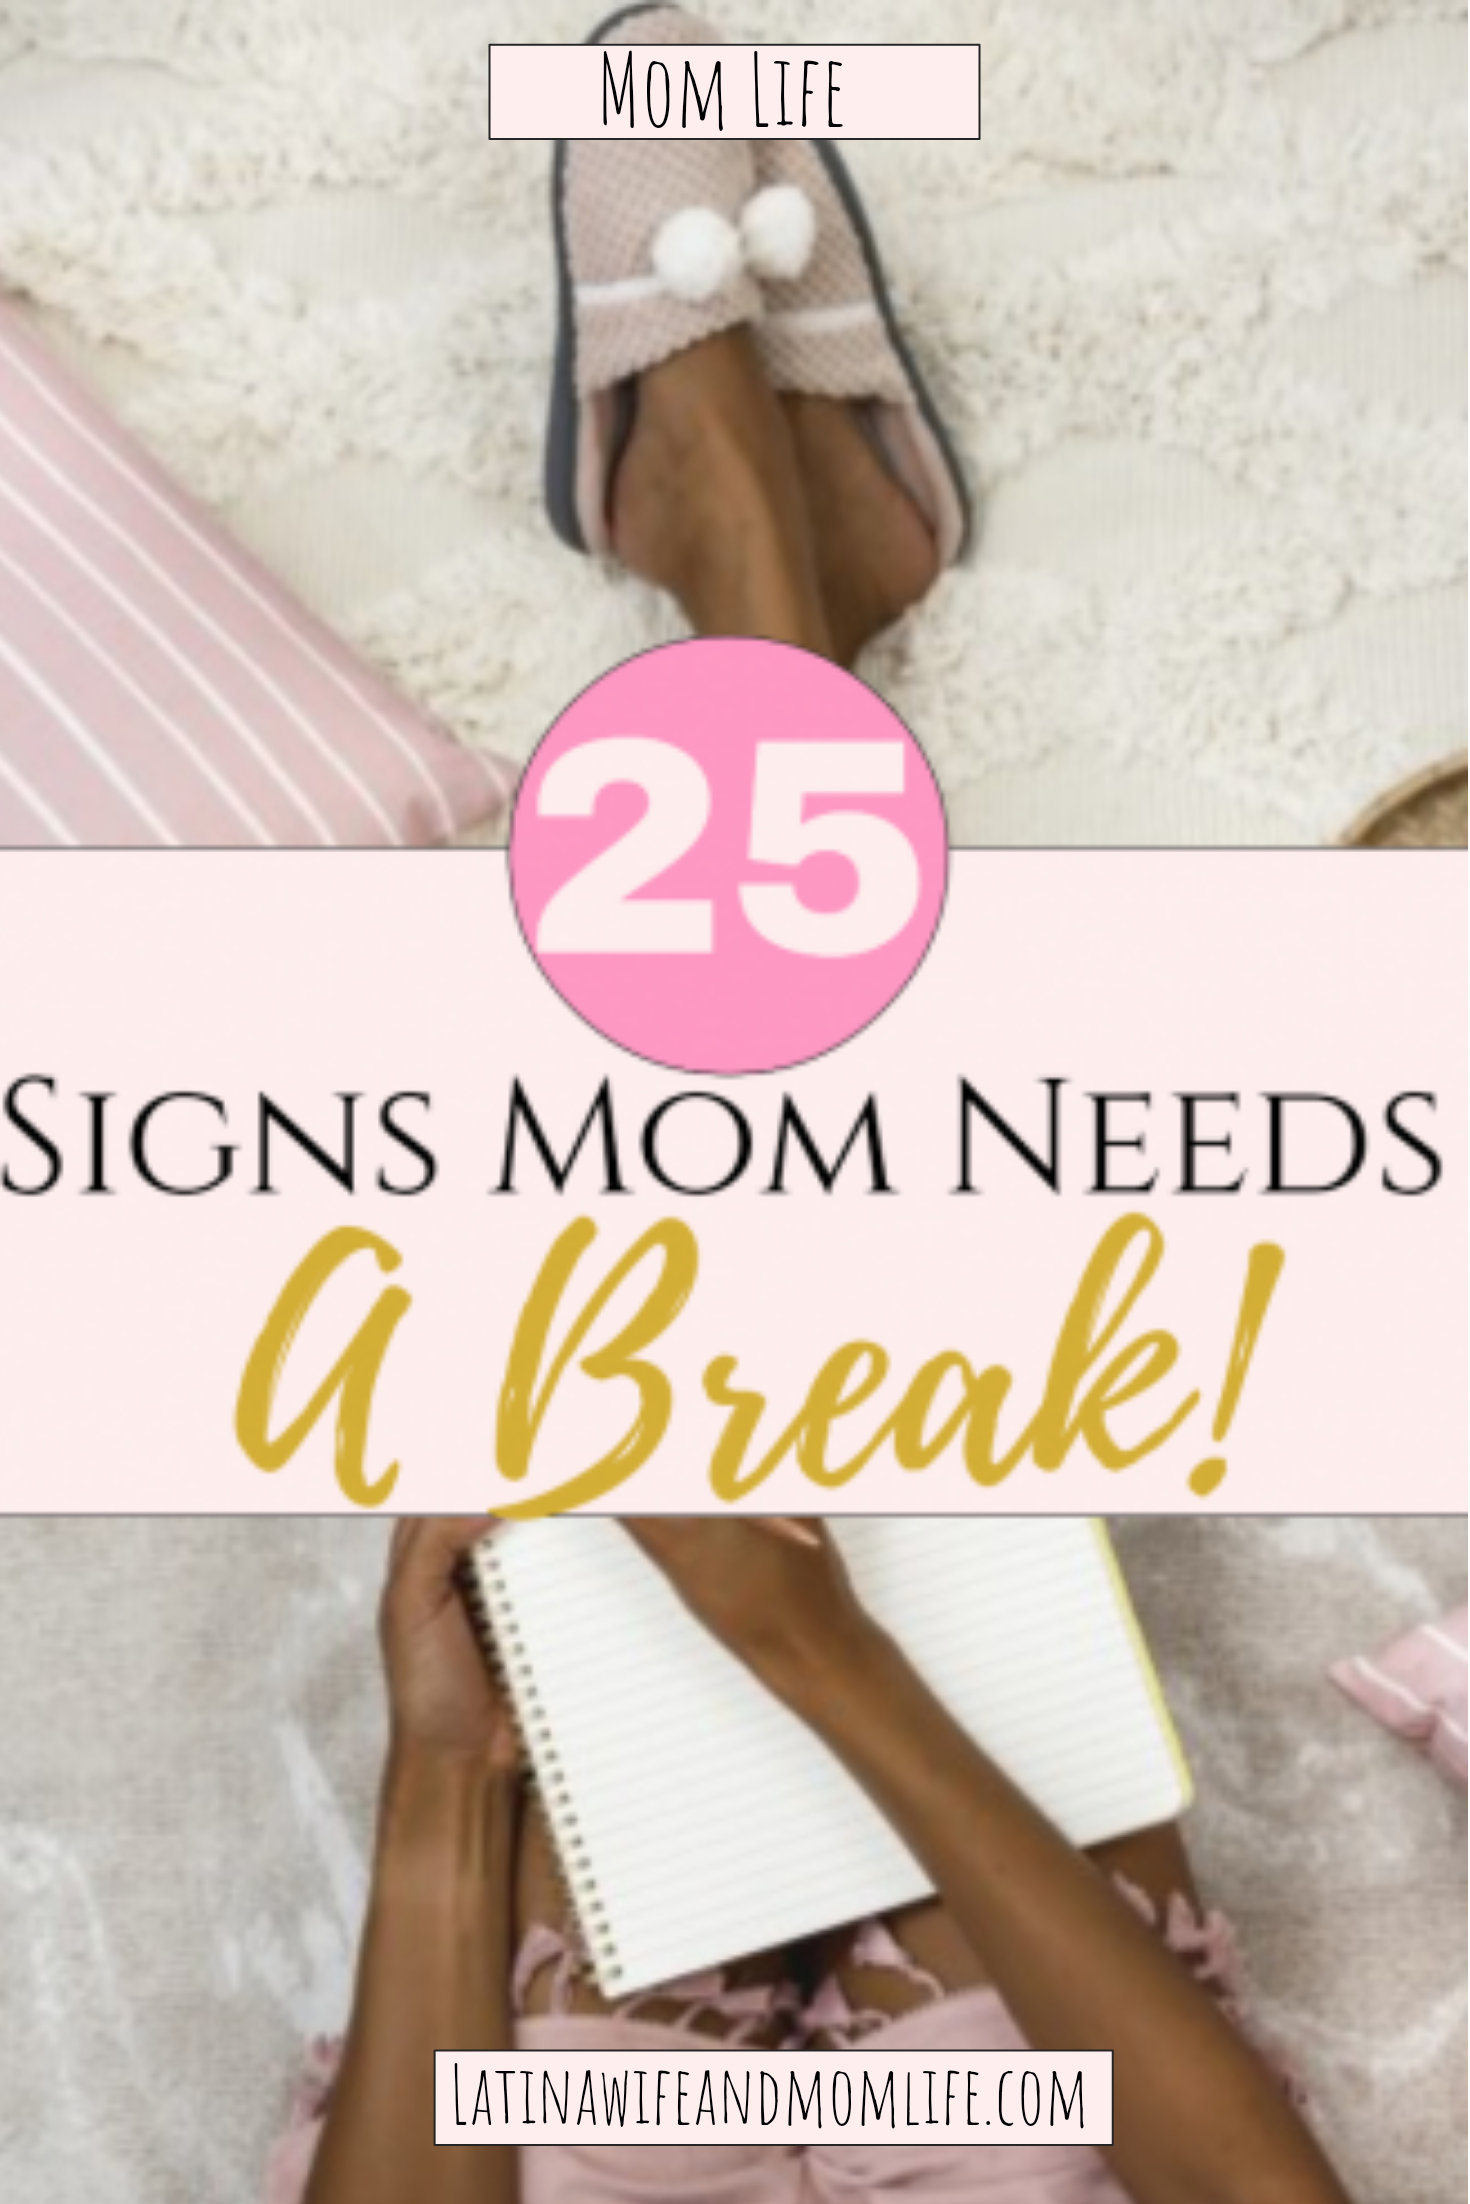 If you have come as far as having to ask yourself when you need a break, chances are you need t now! Are you ignoring any of these Signs Mom Needs a Break?